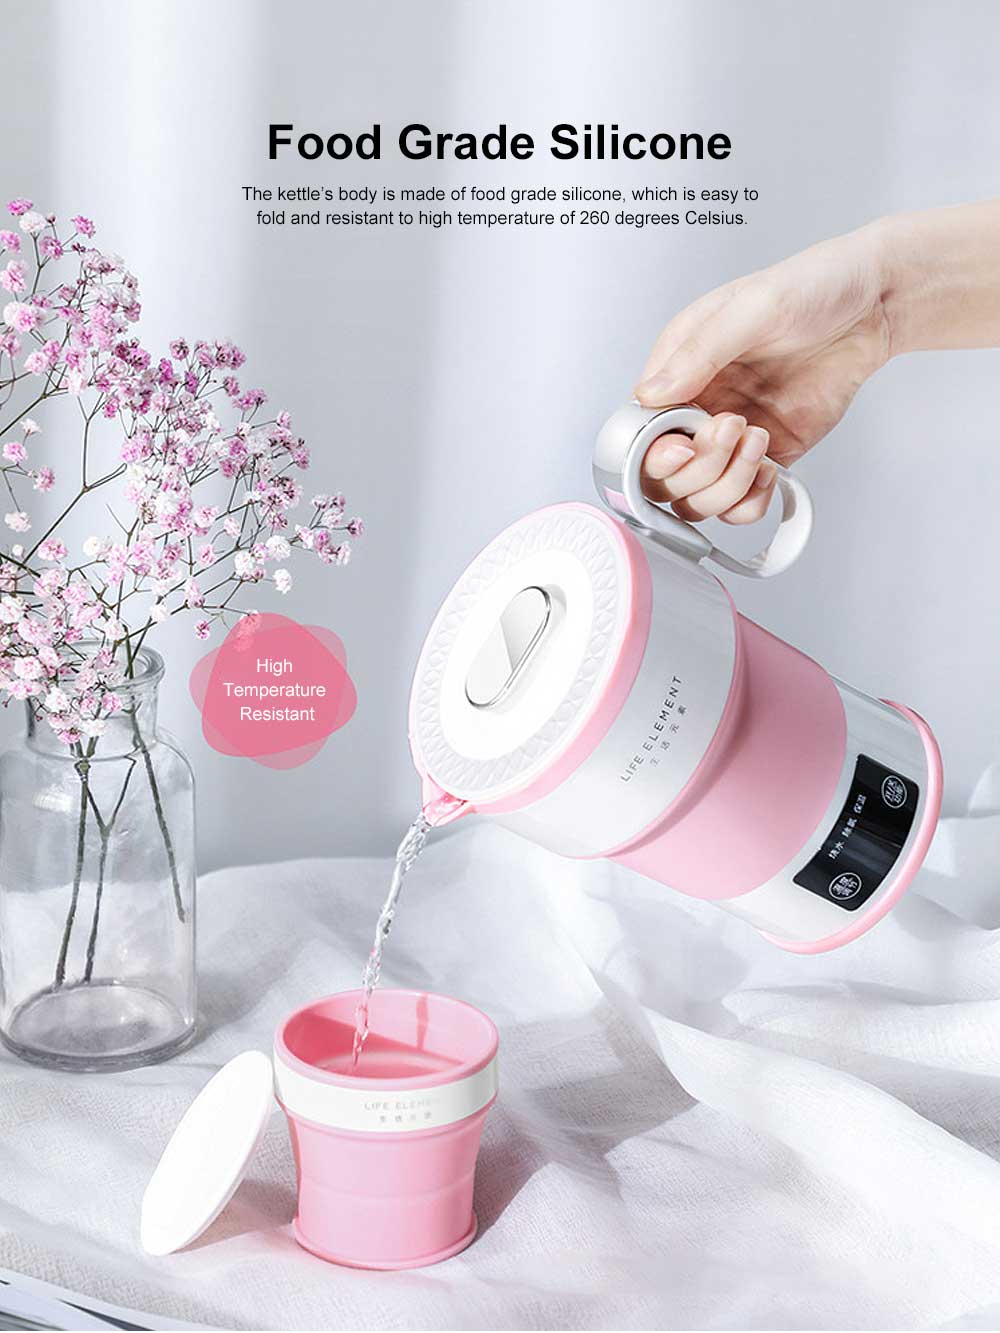 Portable Electric Heating Cup, Food Grade Silicone Pink Compression Folding Kettle for Travel, Life Element Intelligent Water Bottle 2